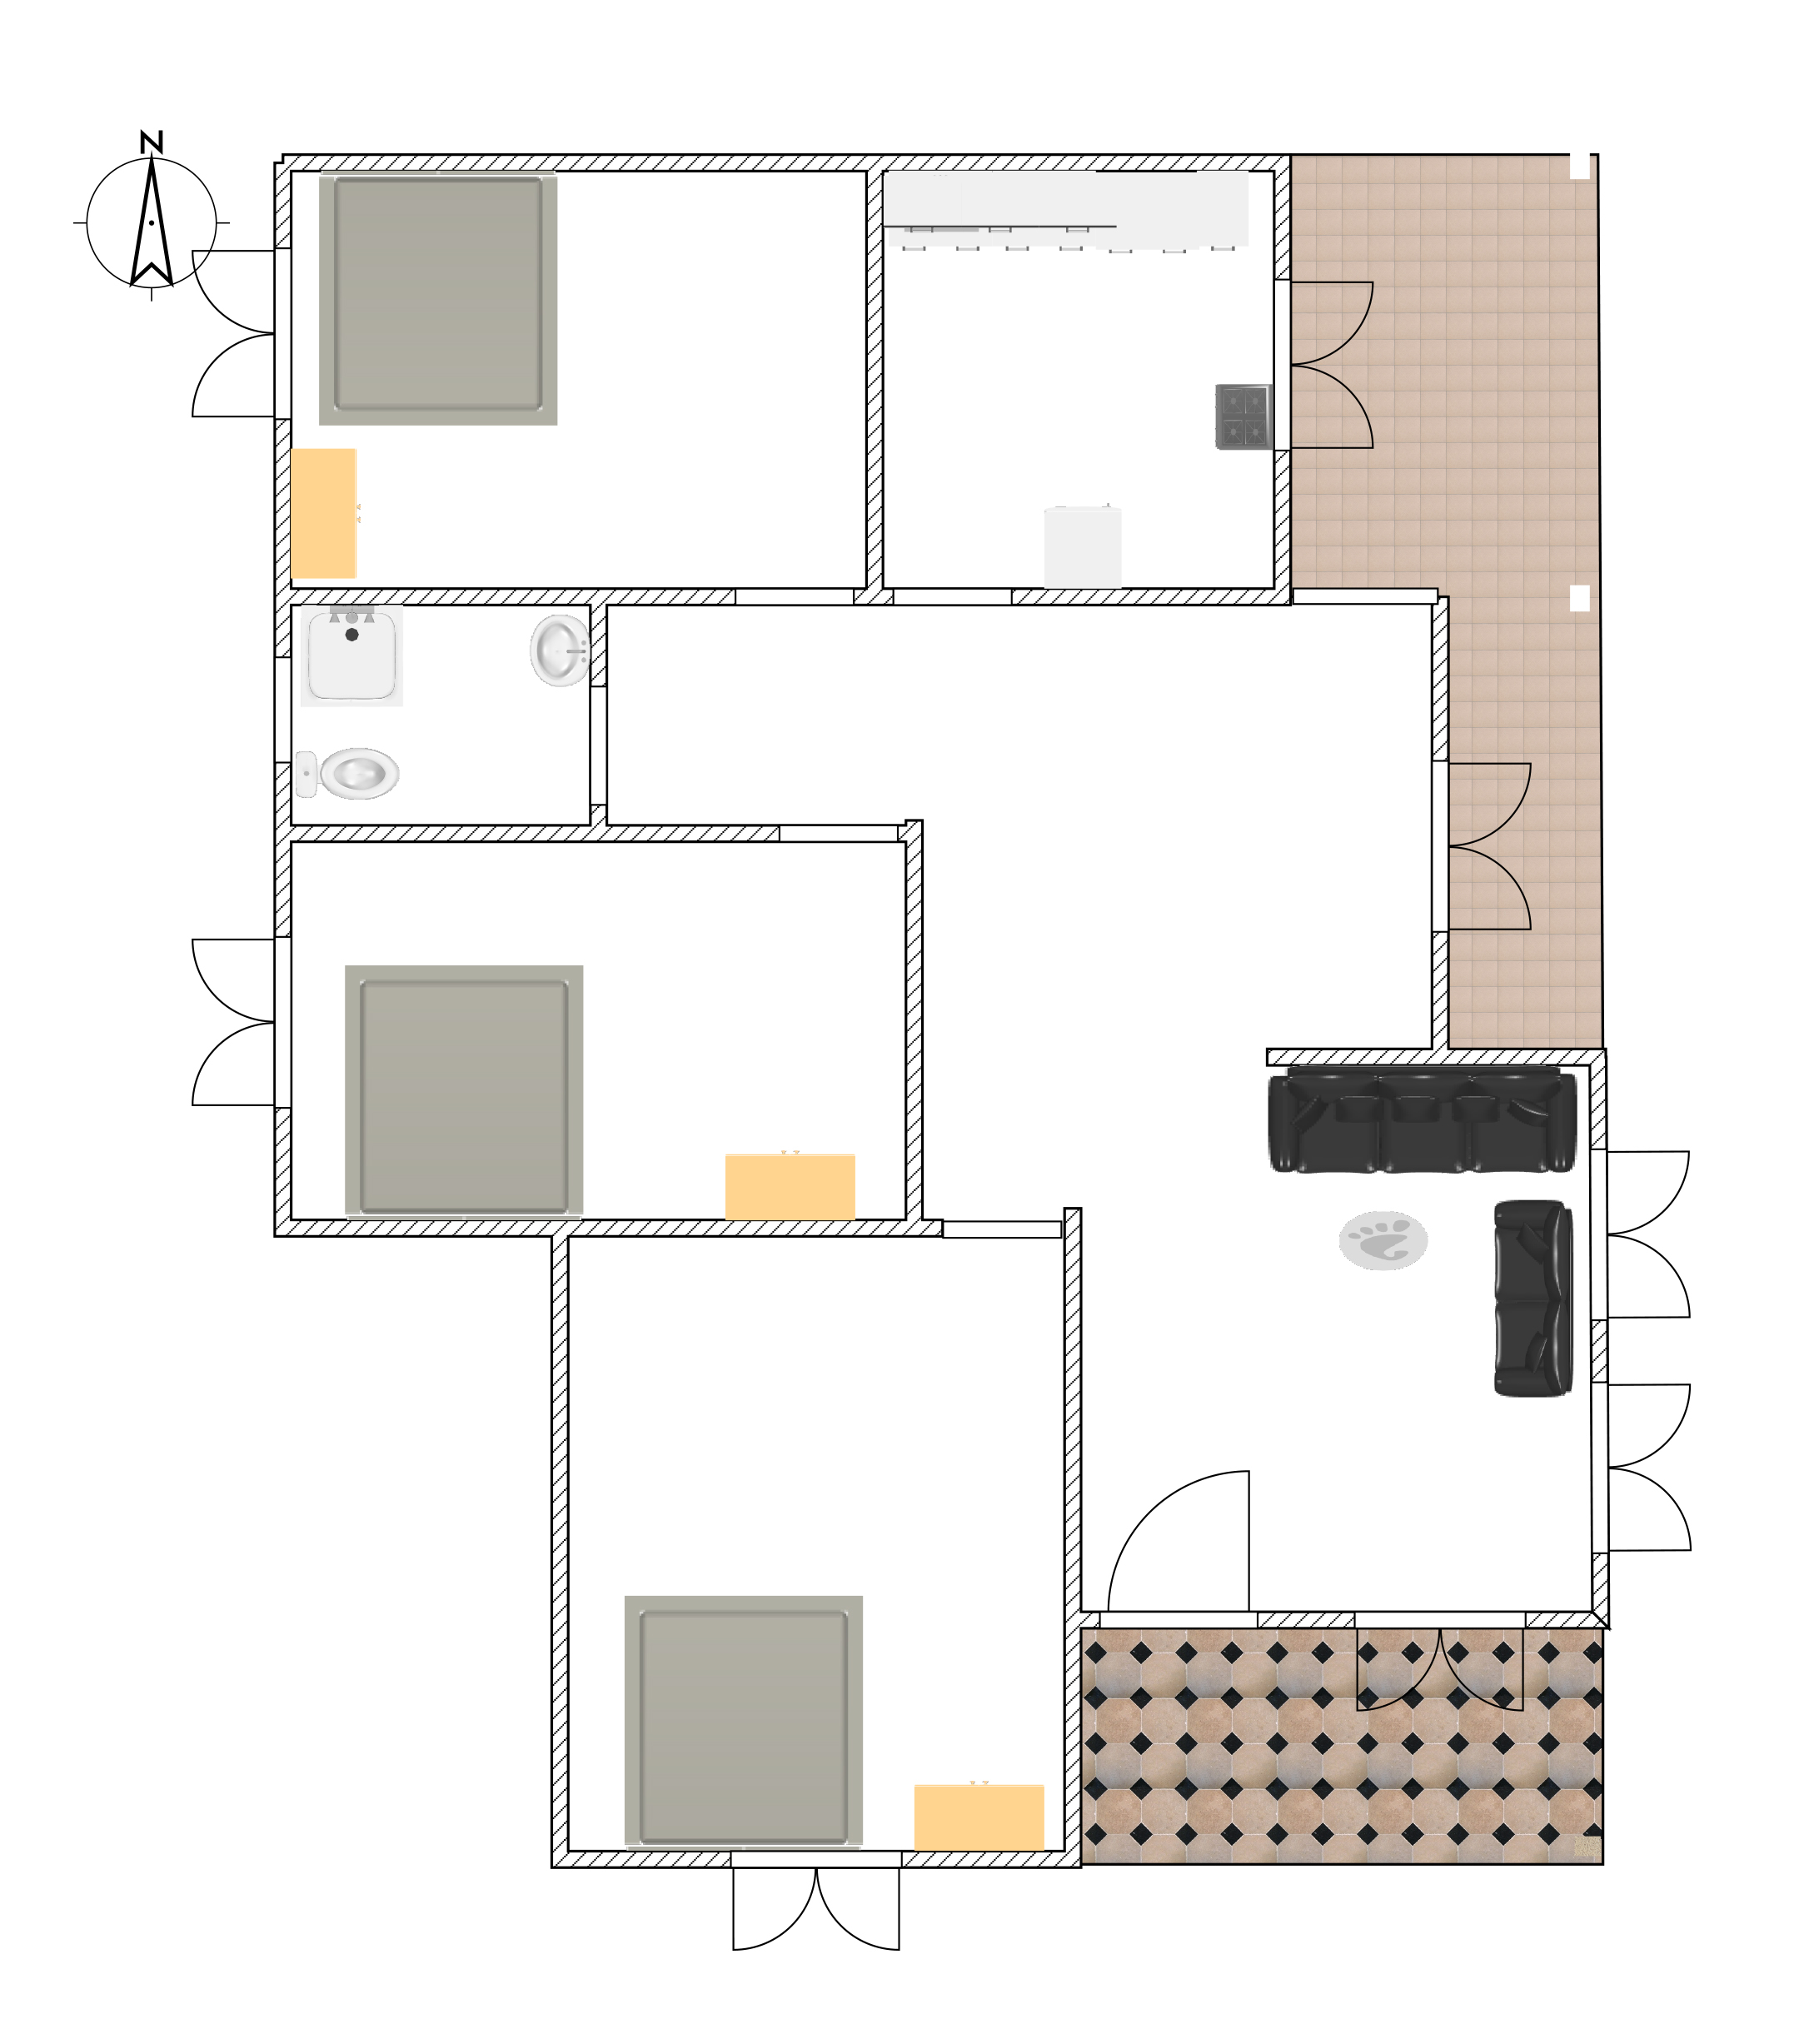 House plan cad file 28 images house plan cad file for House plan cad file